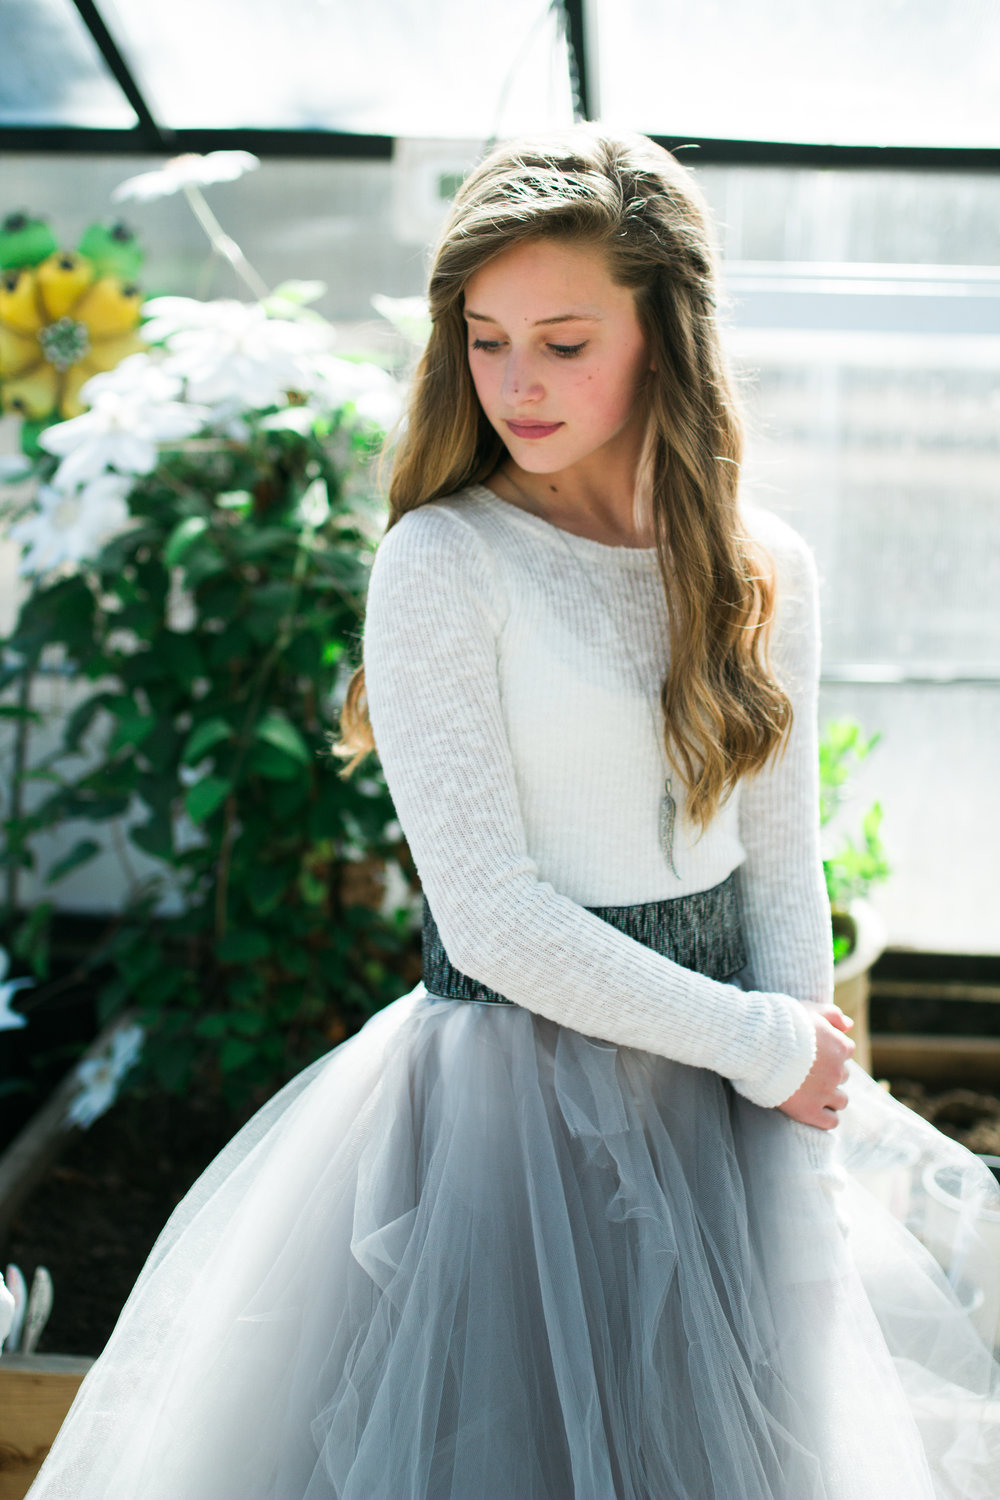 A young teenage girl looks down in a greenhouse while wearing a long and full tulle skirt.